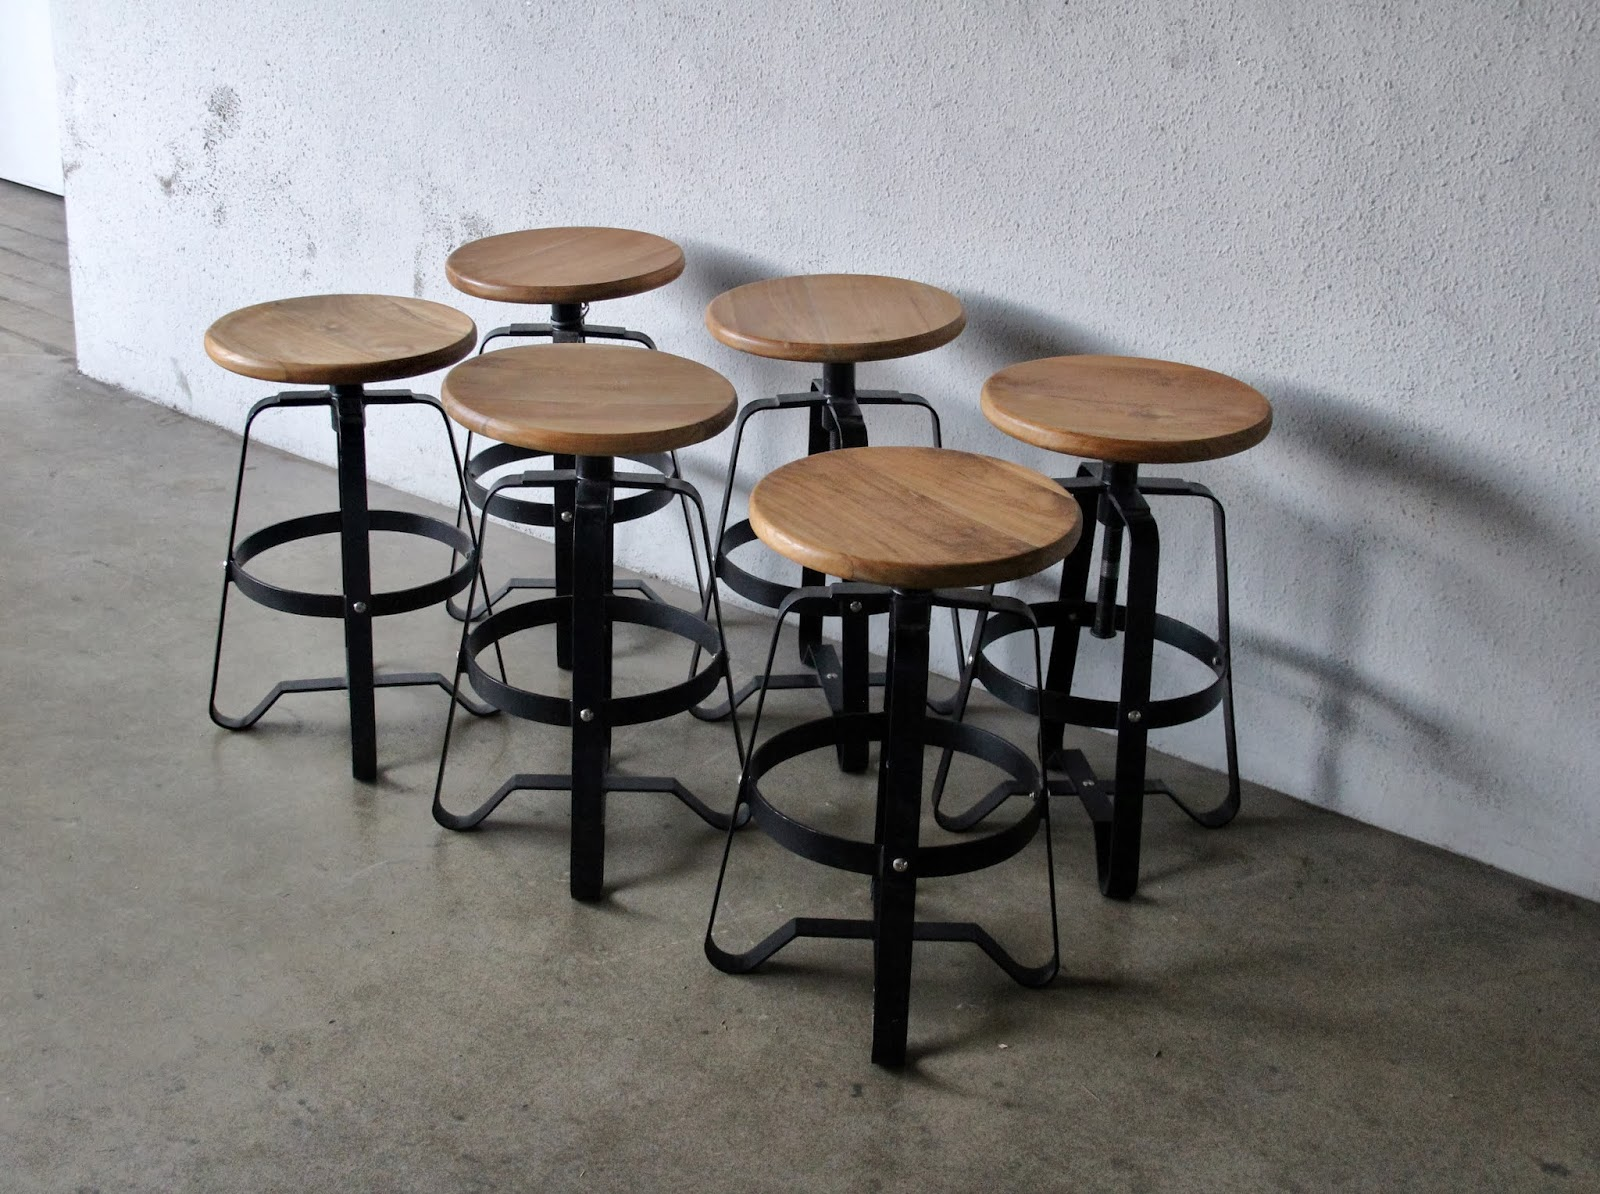 revolving chair second hand spider man charm furniture stools barstools bar chairs and